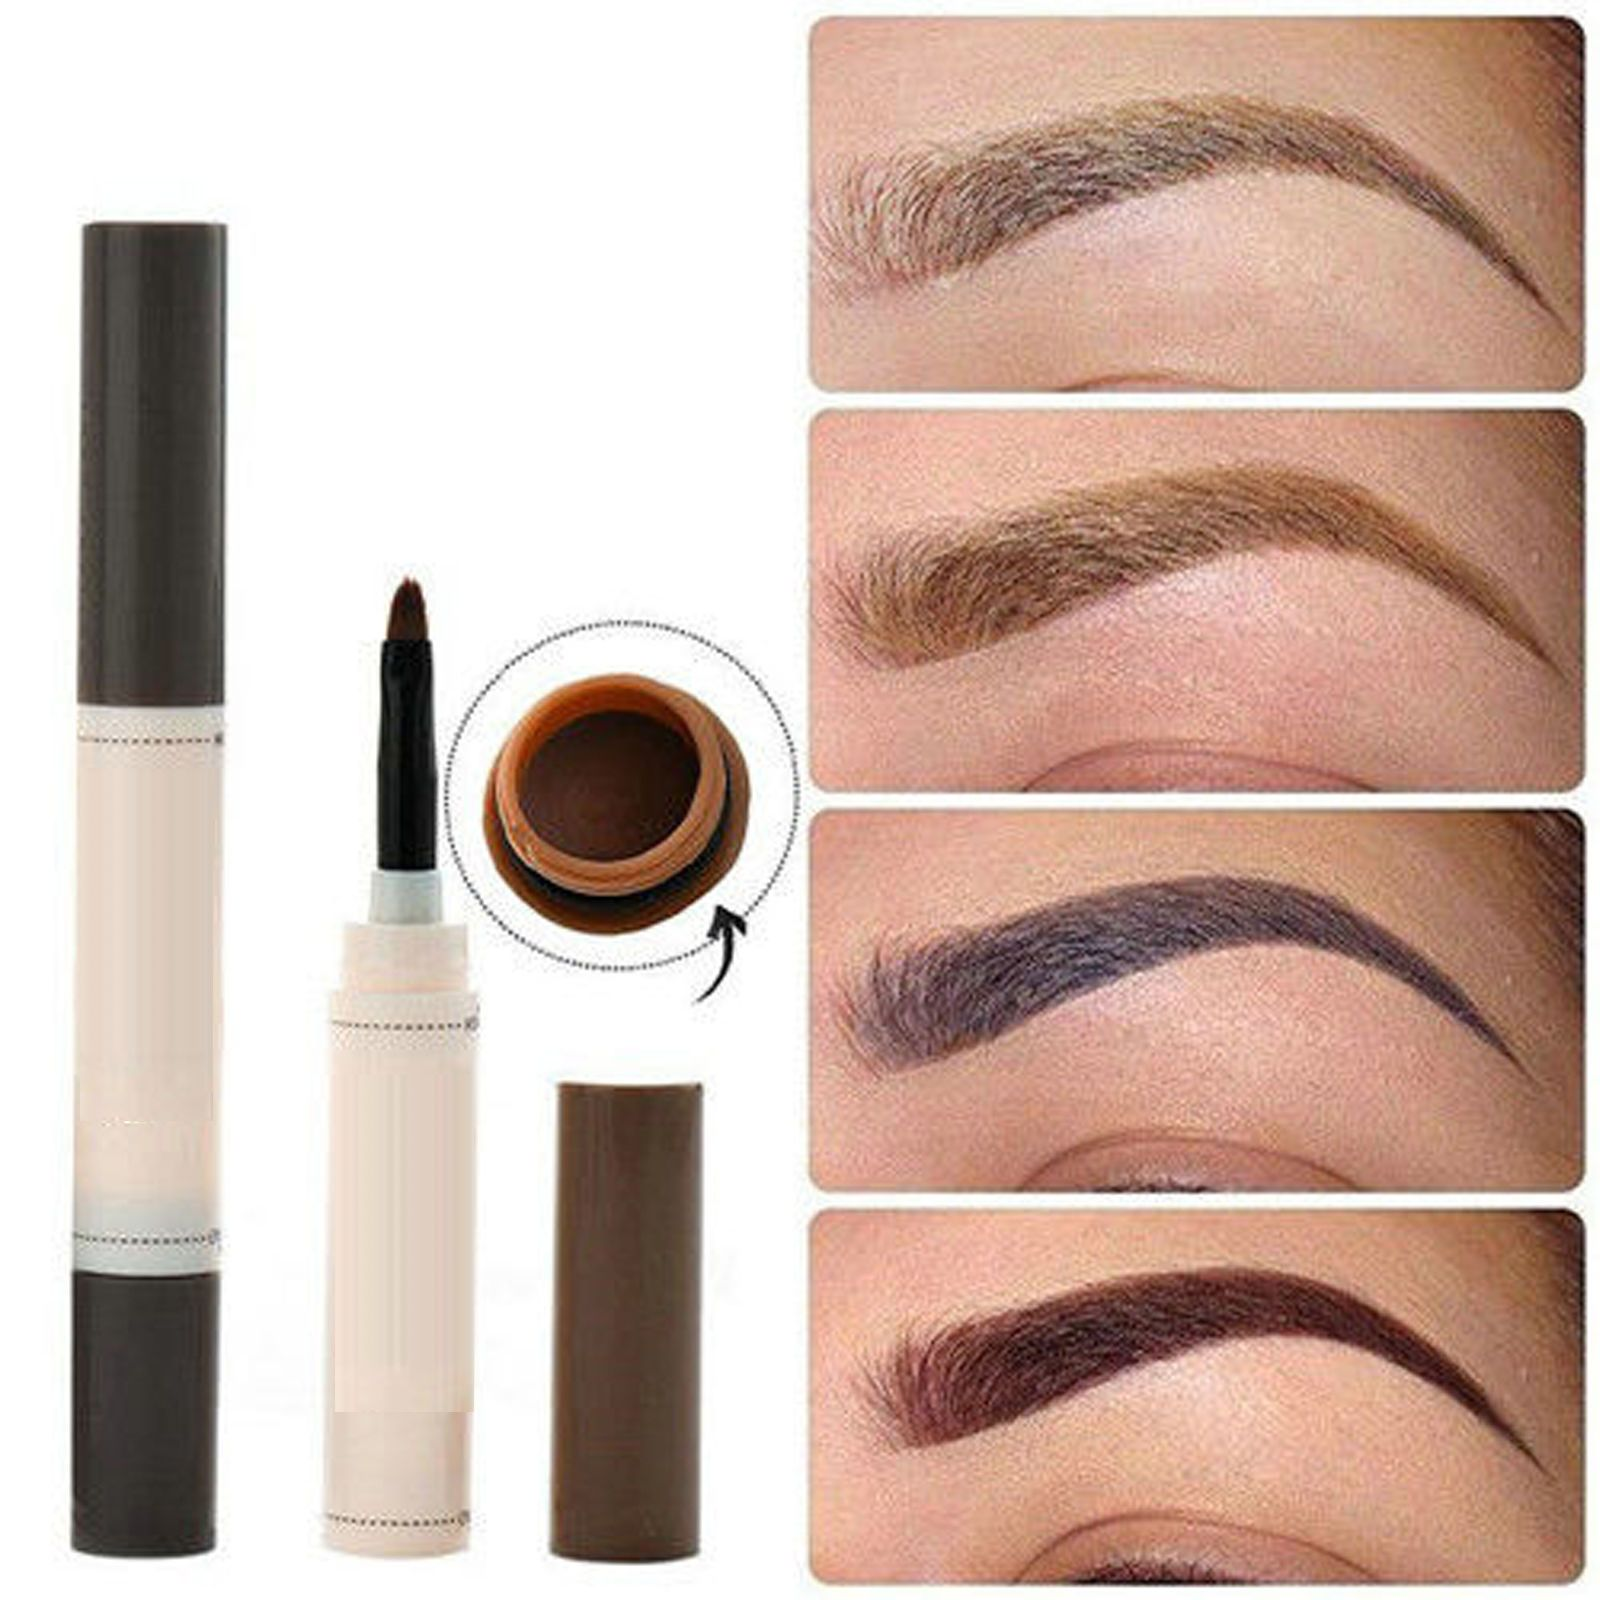 Waterproof Eye Brow Dye Cream Pencil Long Lasting Eyebrow Set Beauty